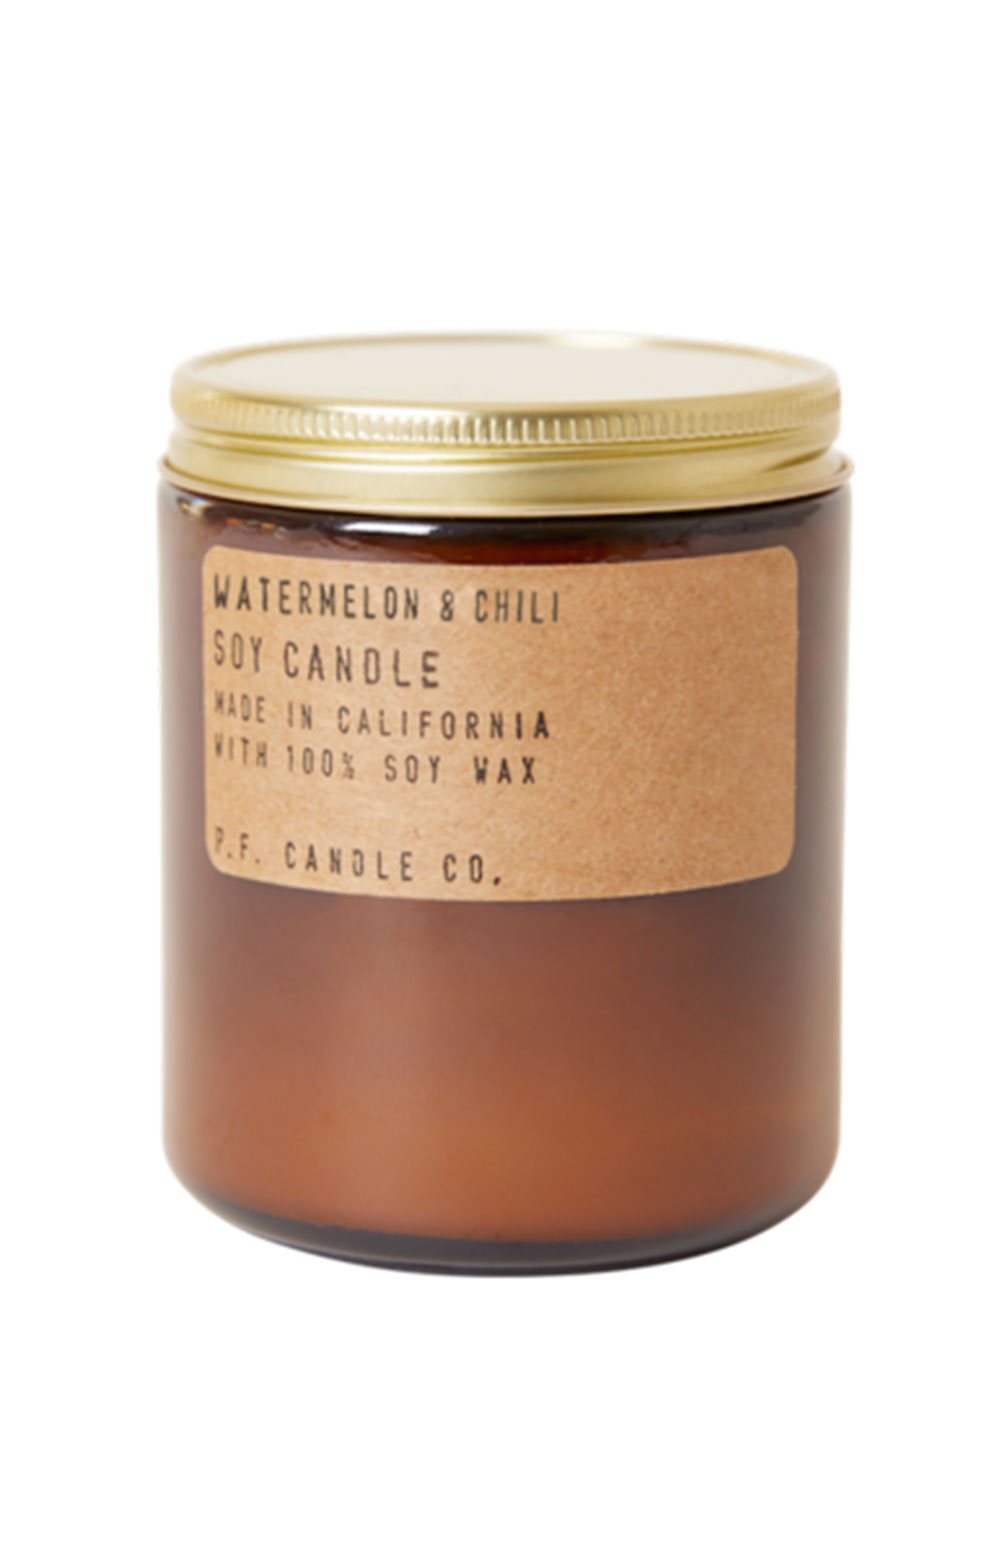 Watermelon & Chili - 7.2 oz Standard Soy Candle